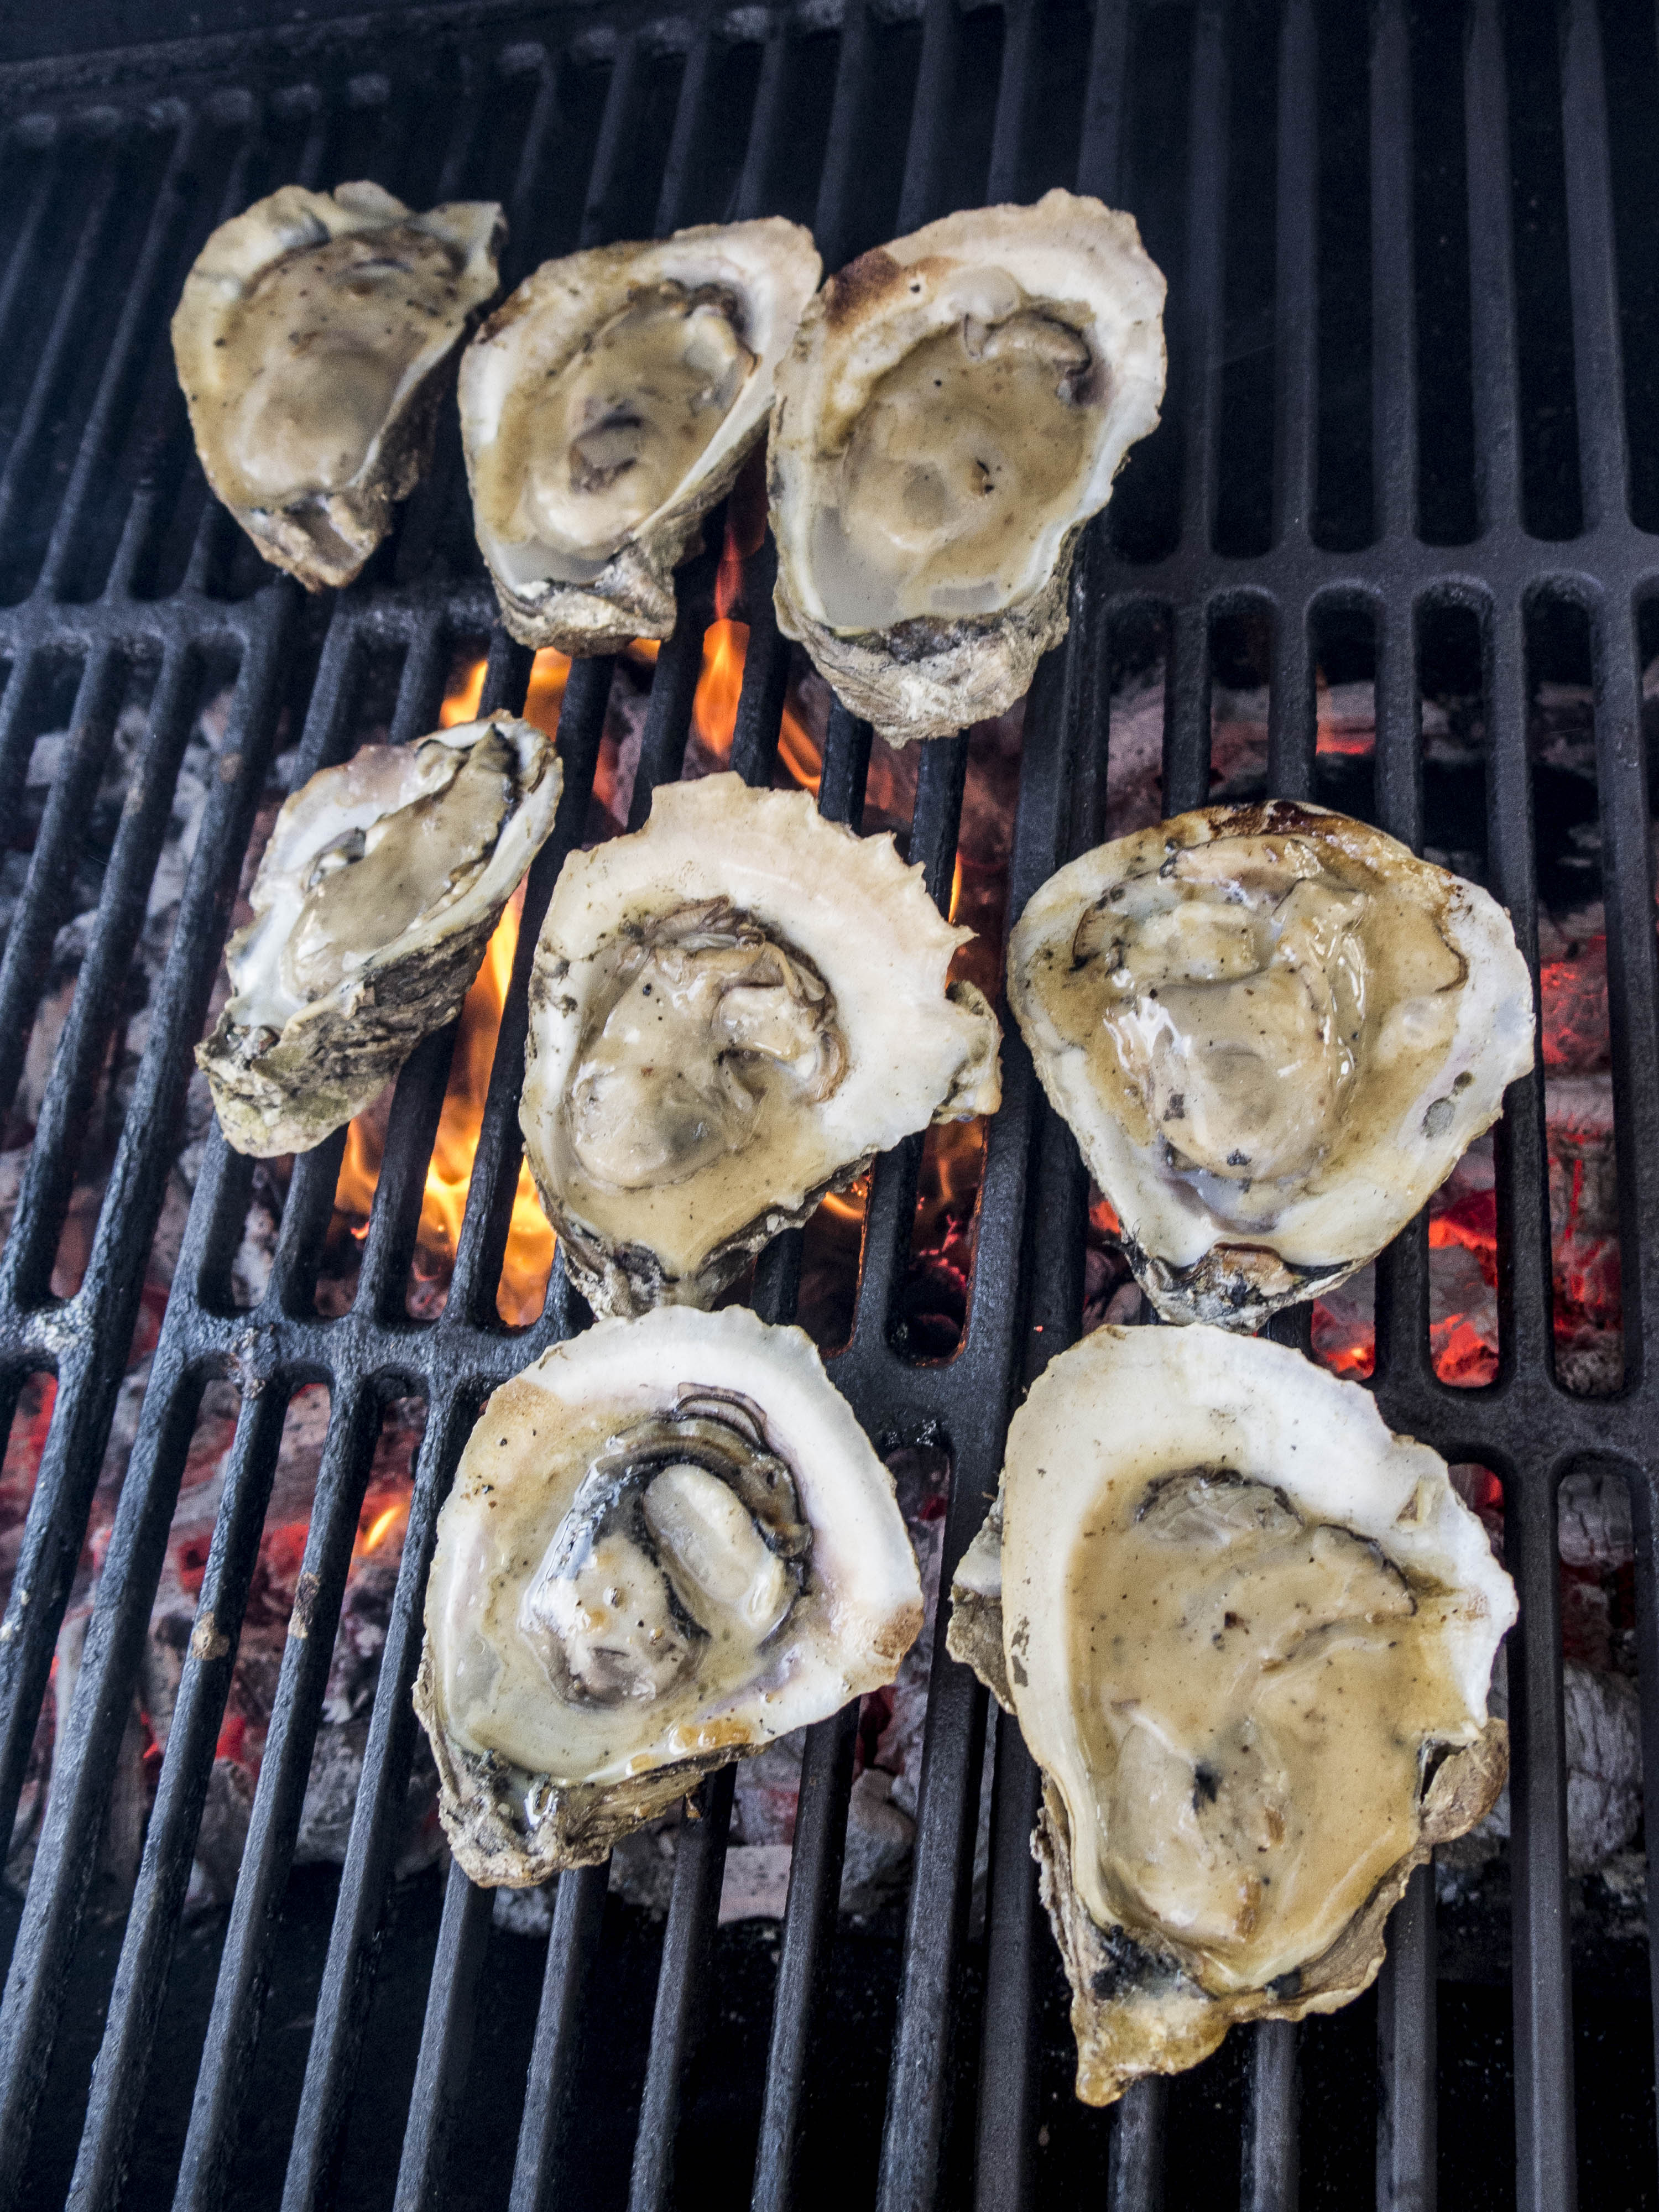 Plenty of Oysters and ways to eat them.